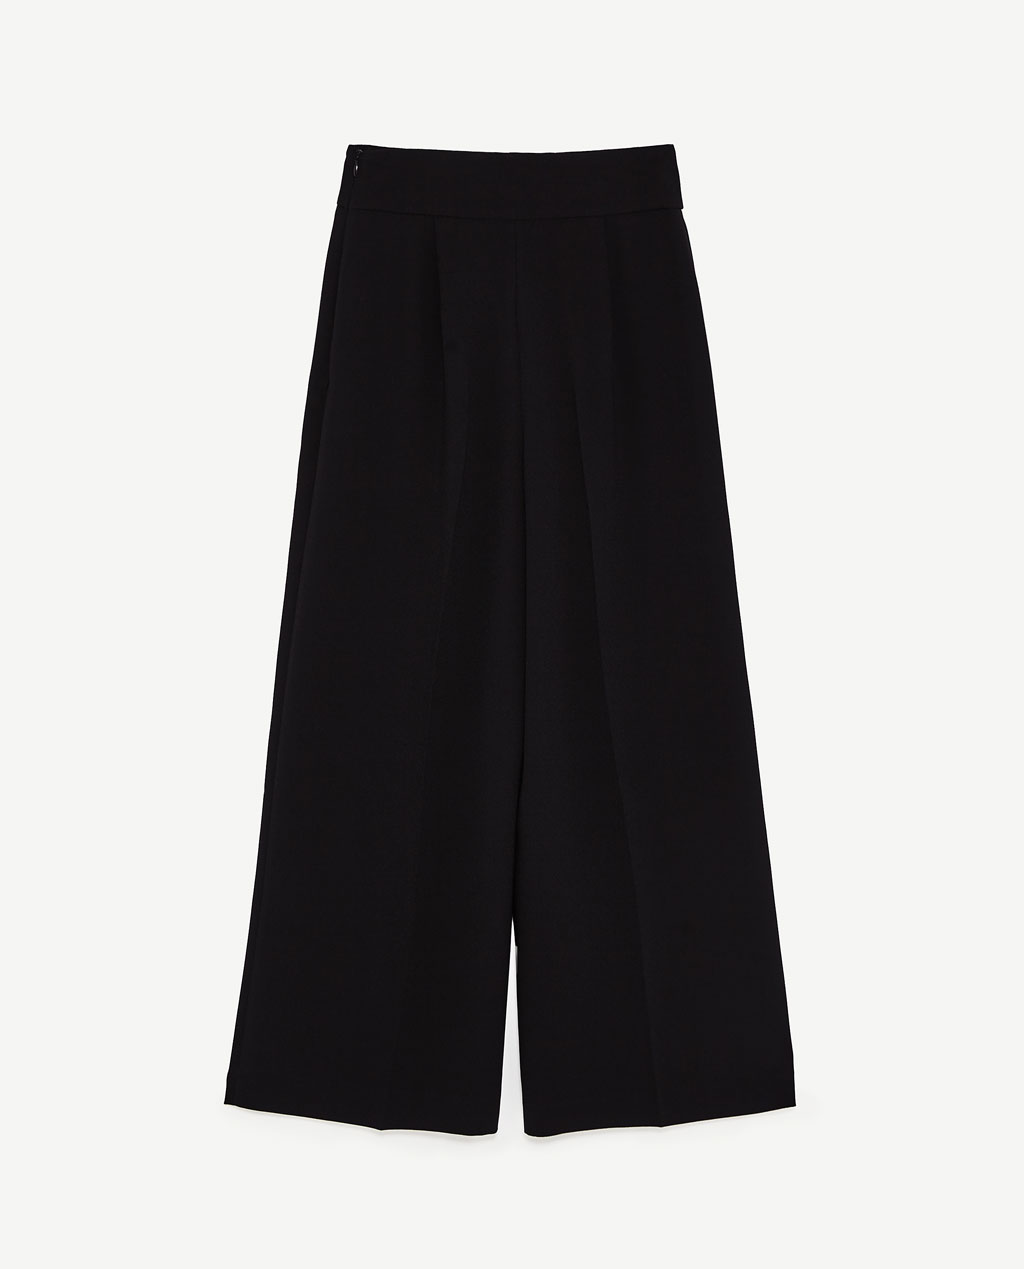 Surprising versatile, these trousers work equally well with a formal shirt, fitted knit or oversized sweater. Whatever your mood, they will do the job well and leave you incredibly comfortable.